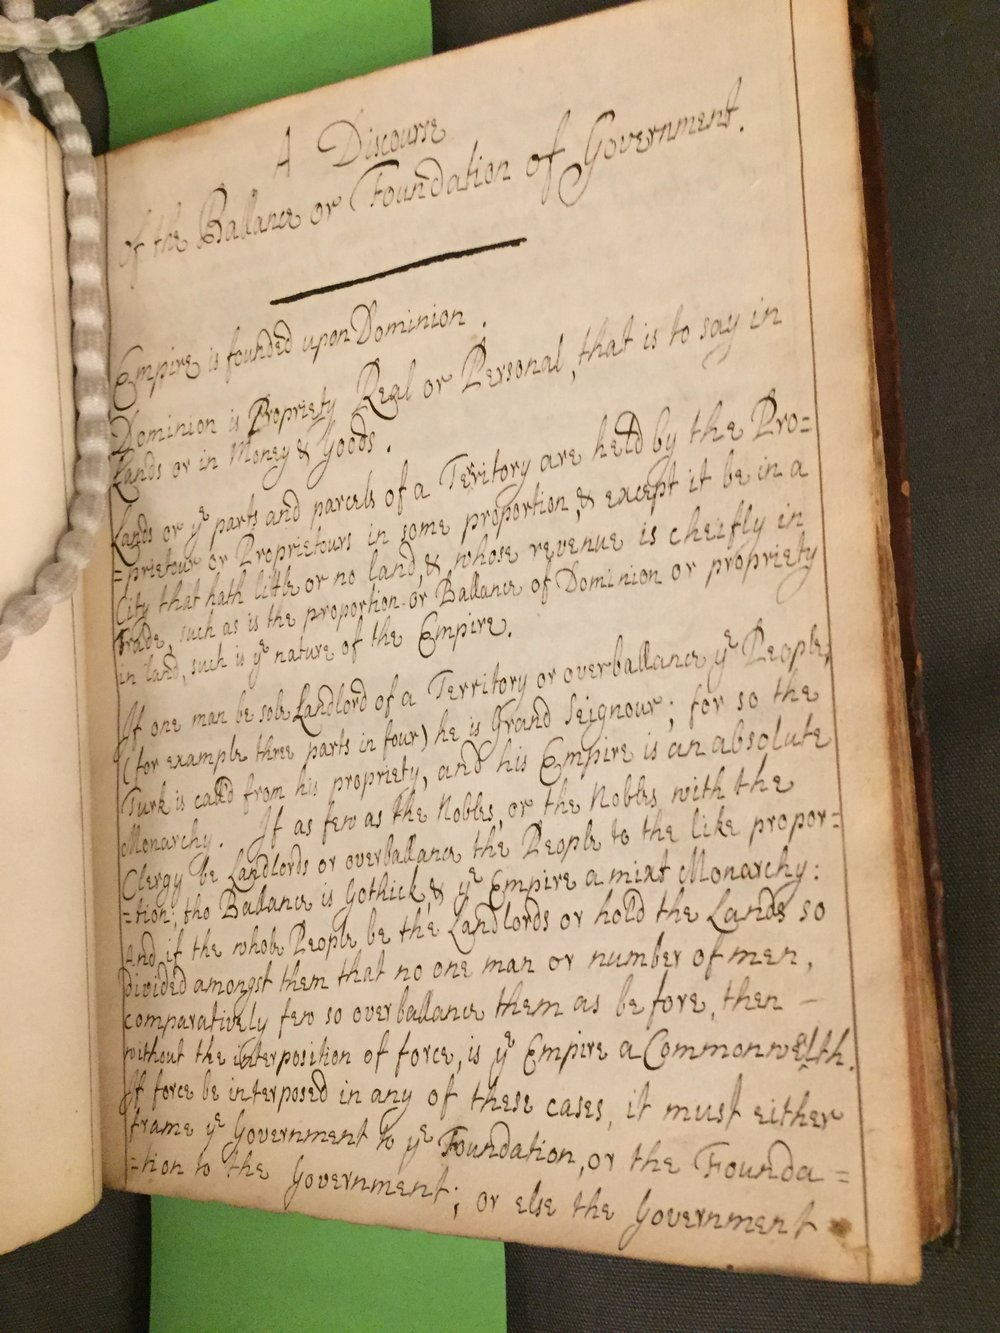 'A Discourse of the Ballance or Foundation of Government'. Reprinted with permission @British Library Board, Harleian MS 5063 f.17.